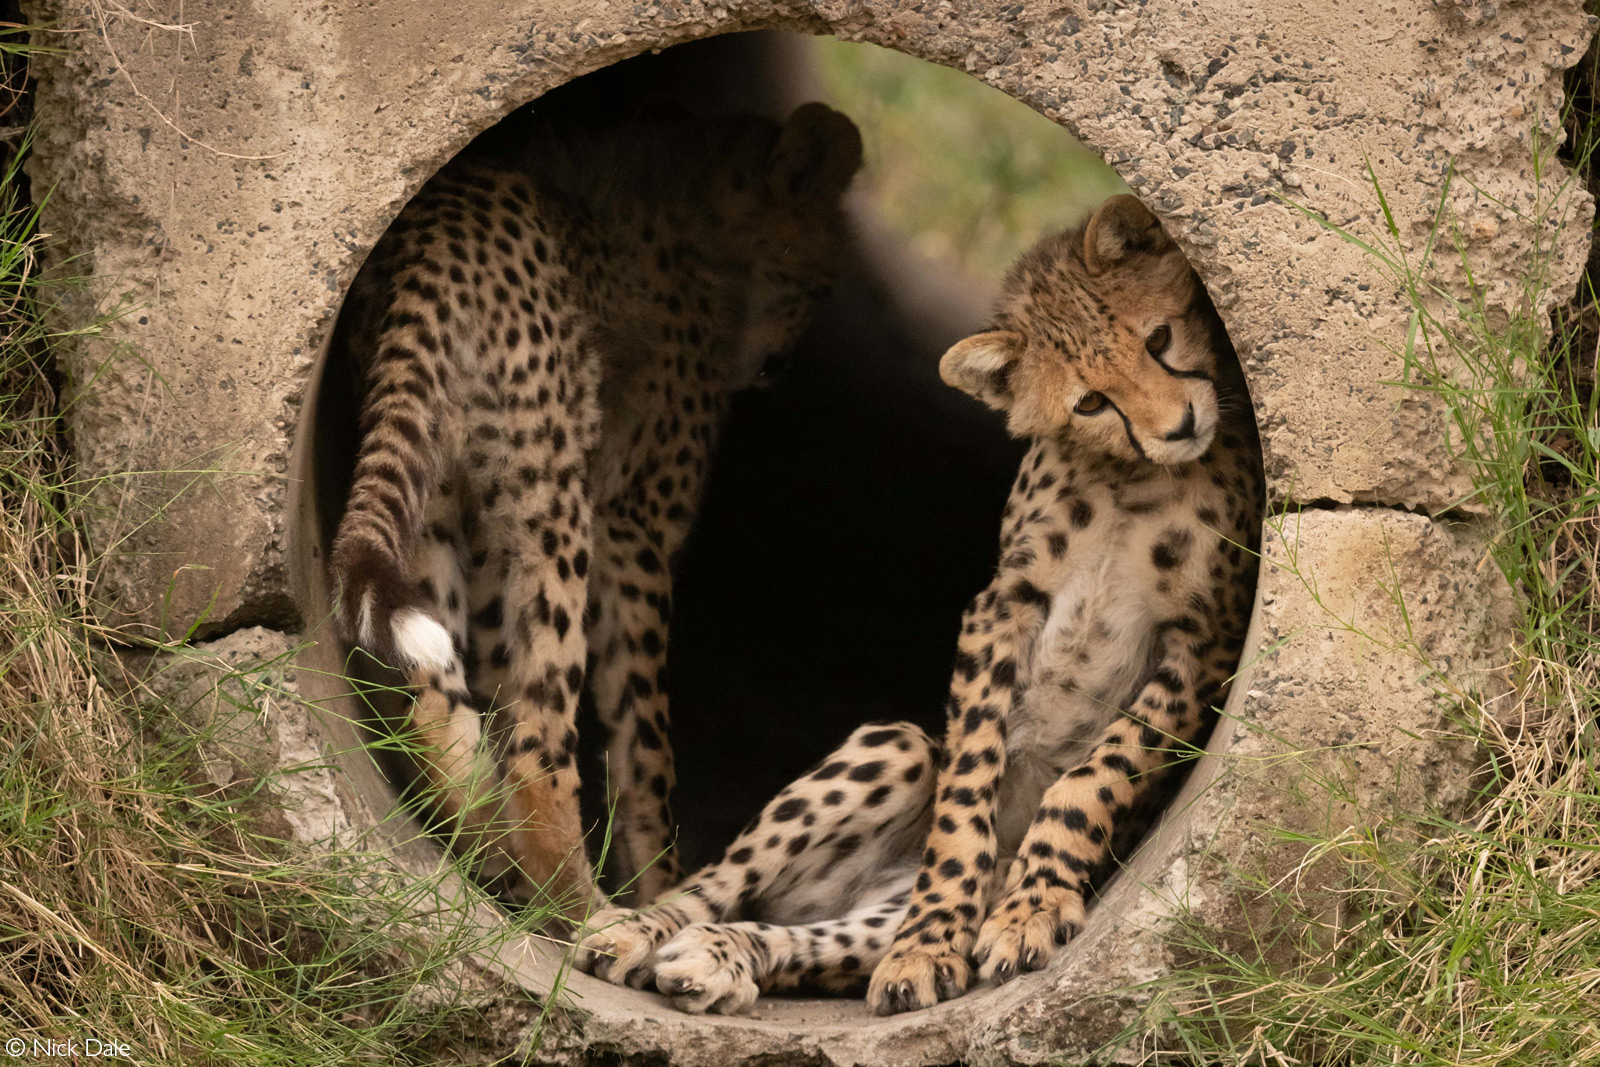 A cheetah cub rests against the curved wall of a concrete pipe. Maasai Mara National Reserve, Kenya © Nick Dale